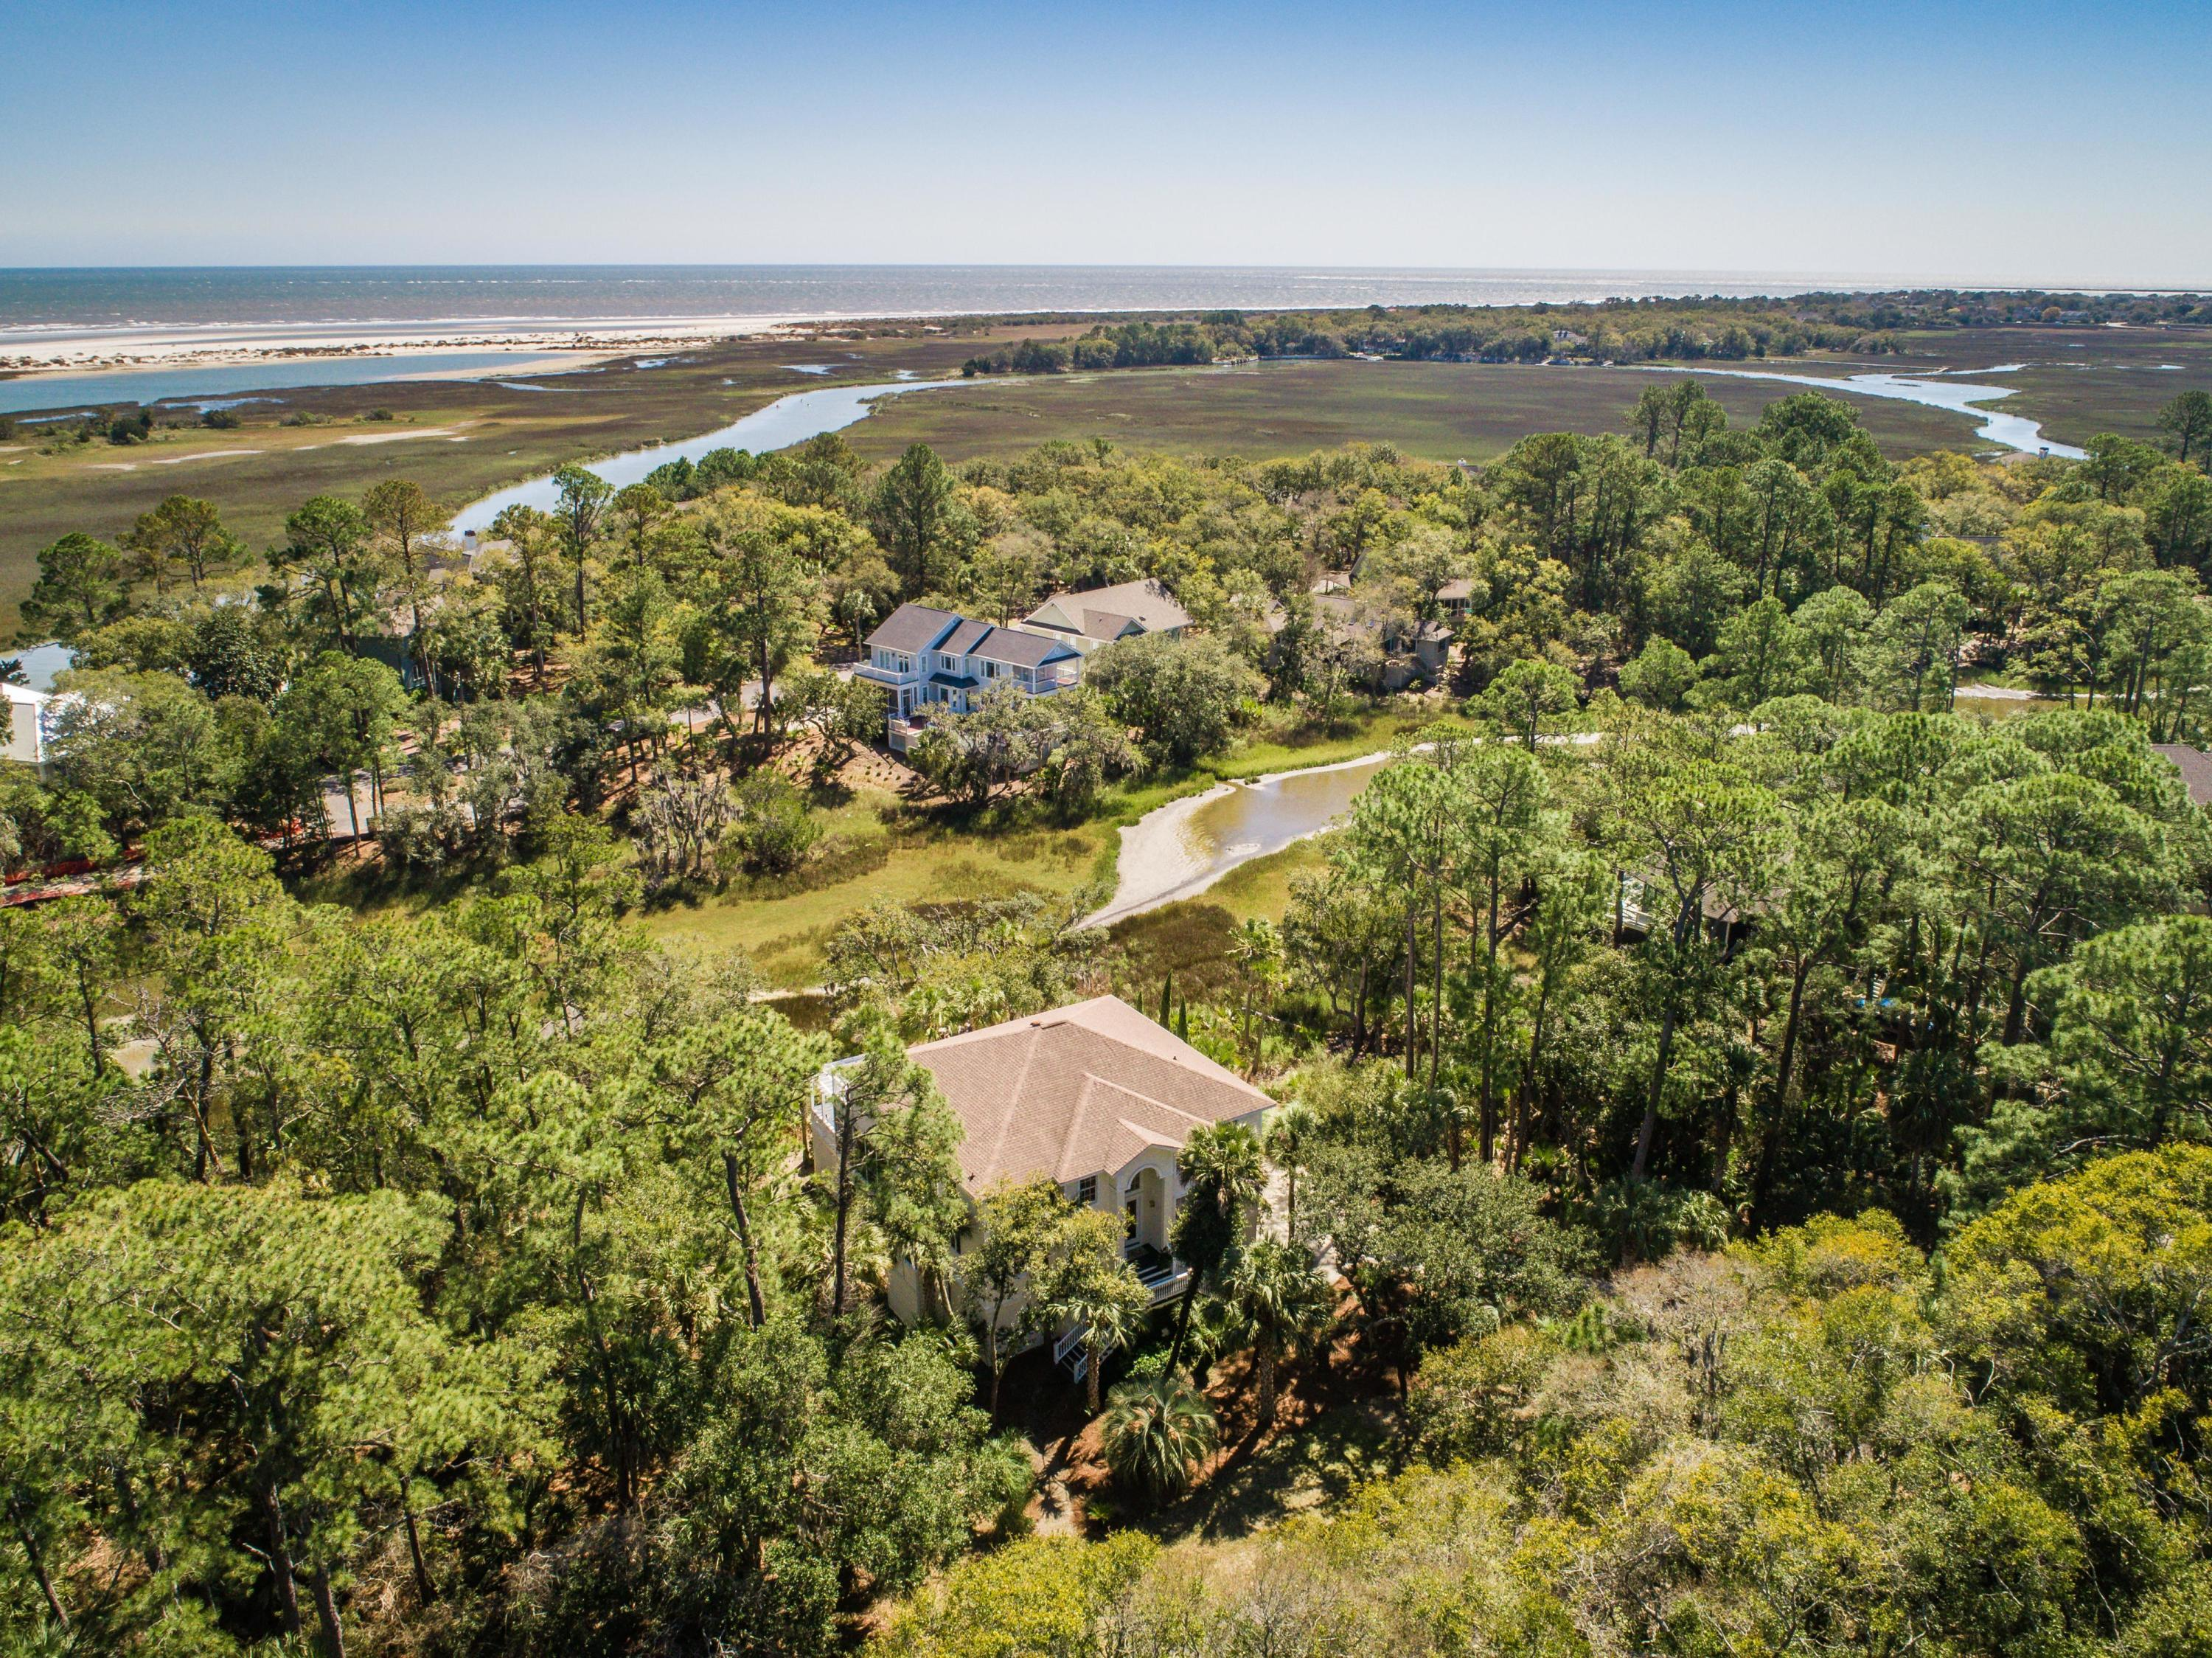 Seabrook Island Homes For Sale - 2957 Deer Point, Seabrook Island, SC - 32